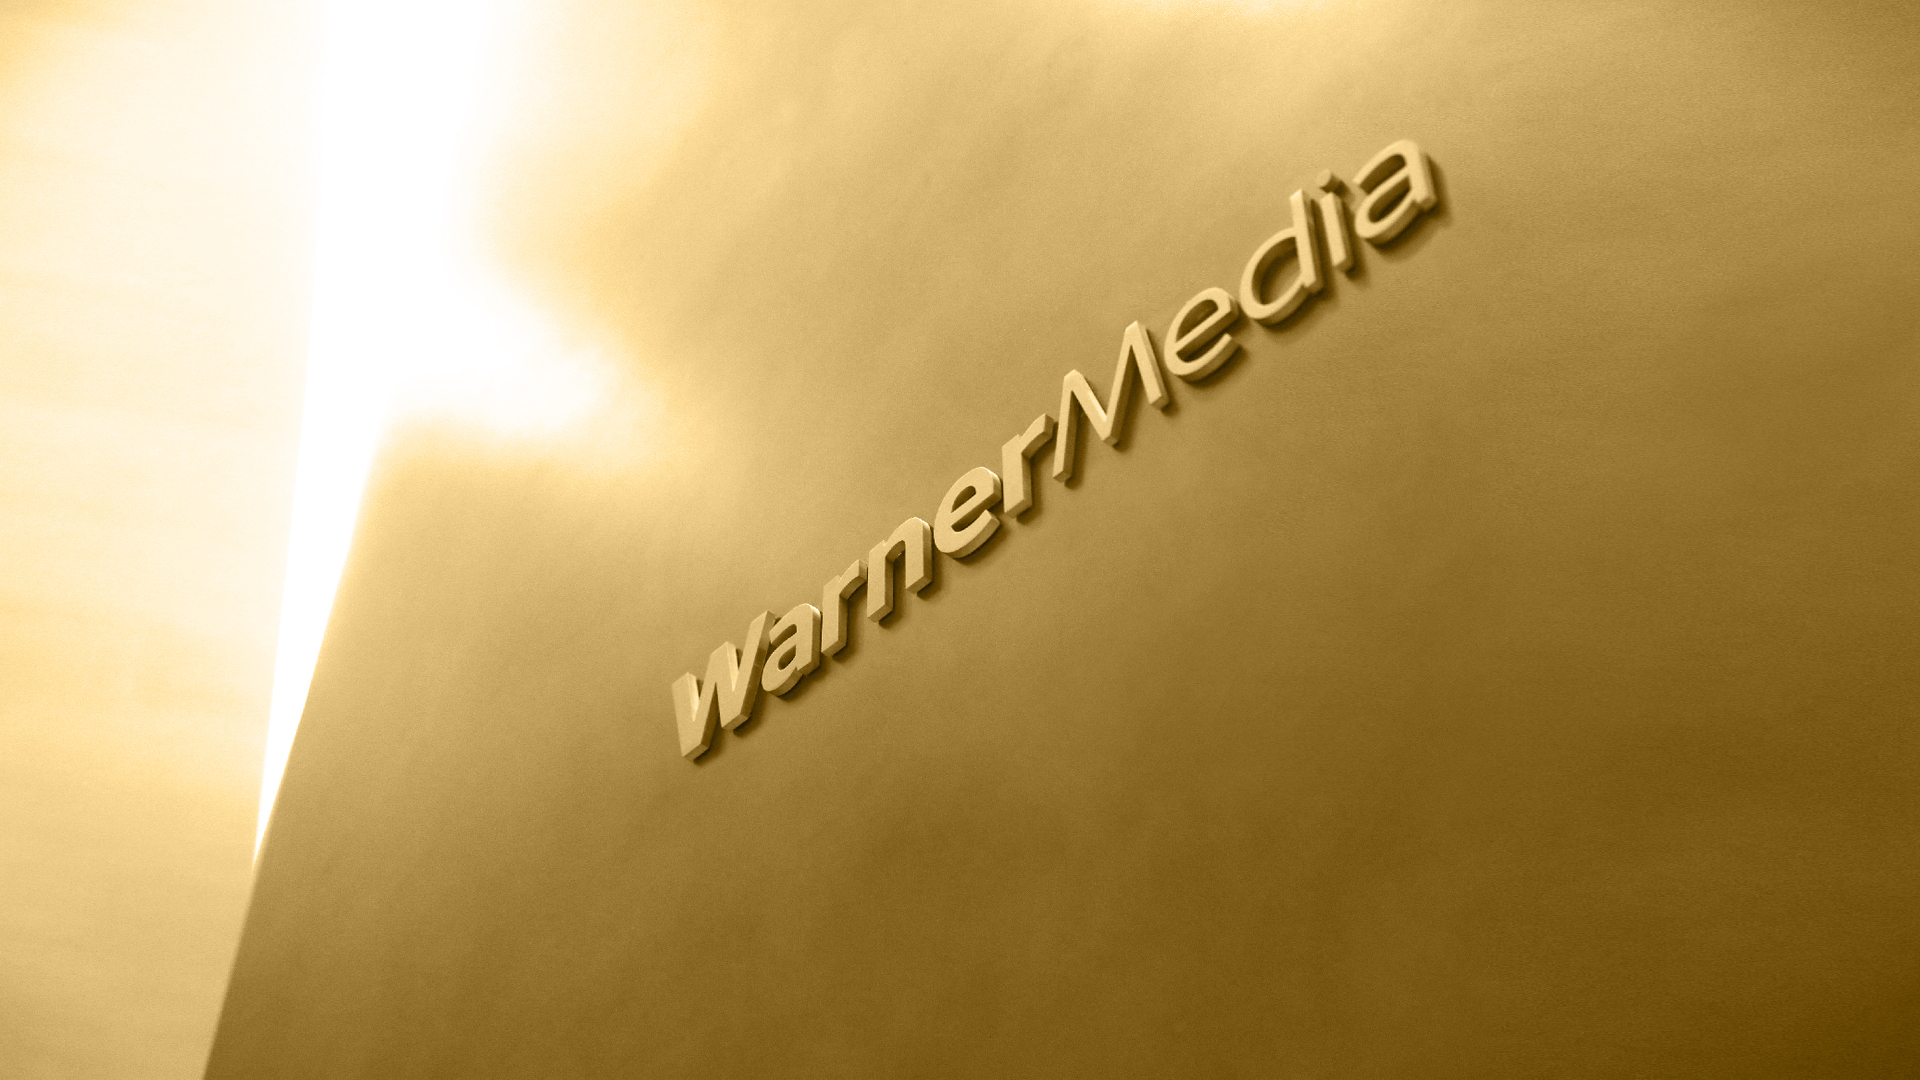 WarnerMedia Image